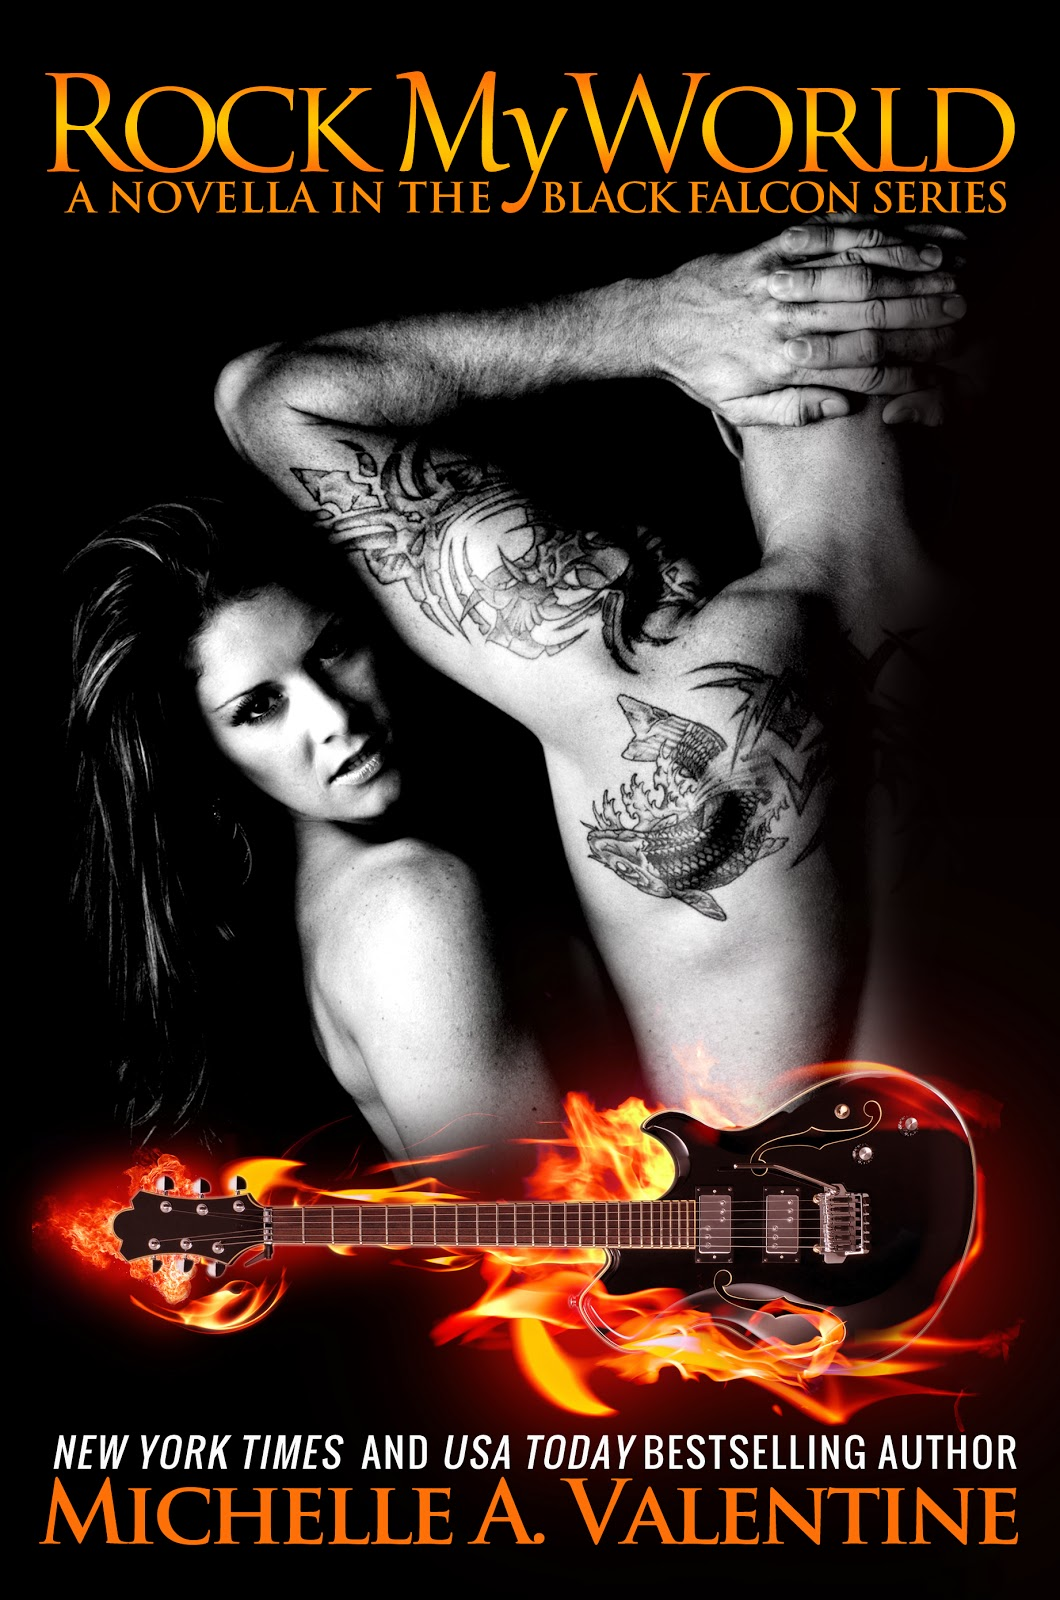 http://www.amazon.com/Rock-My-World-Michelle-Valentine-ebook/dp/B00DOHYSEA/ref=sr_1_6?s=books&ie=UTF8&qid=1395161804&sr=1-6&keywords=Rock+the+Heart